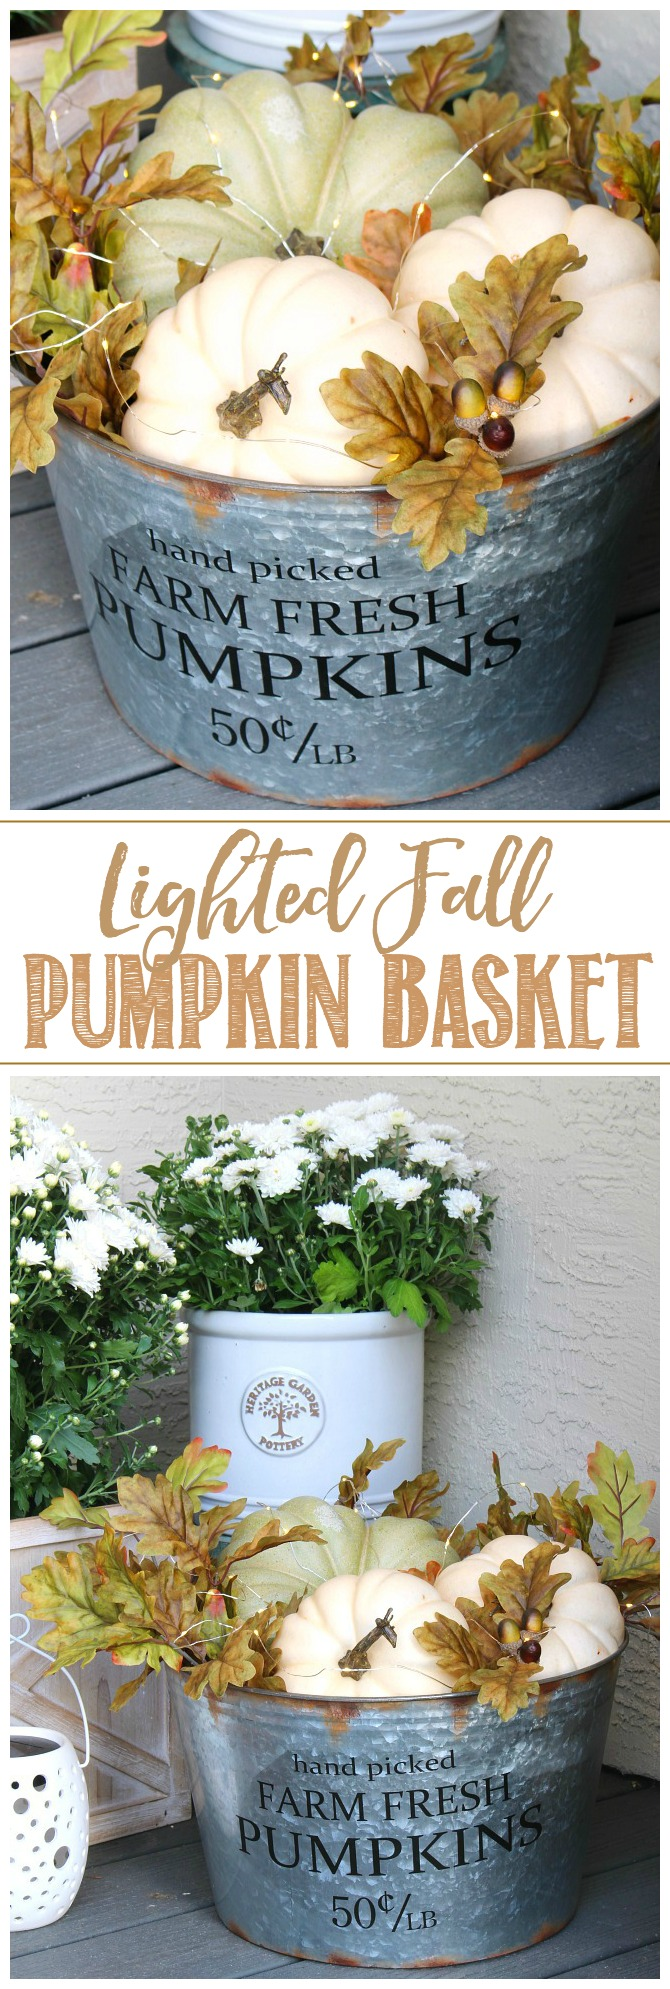 Lighted fall pumpkin bucket tutorial. Galvanized metal bucket filled with pumpkins, fall leaves, and mini lights.